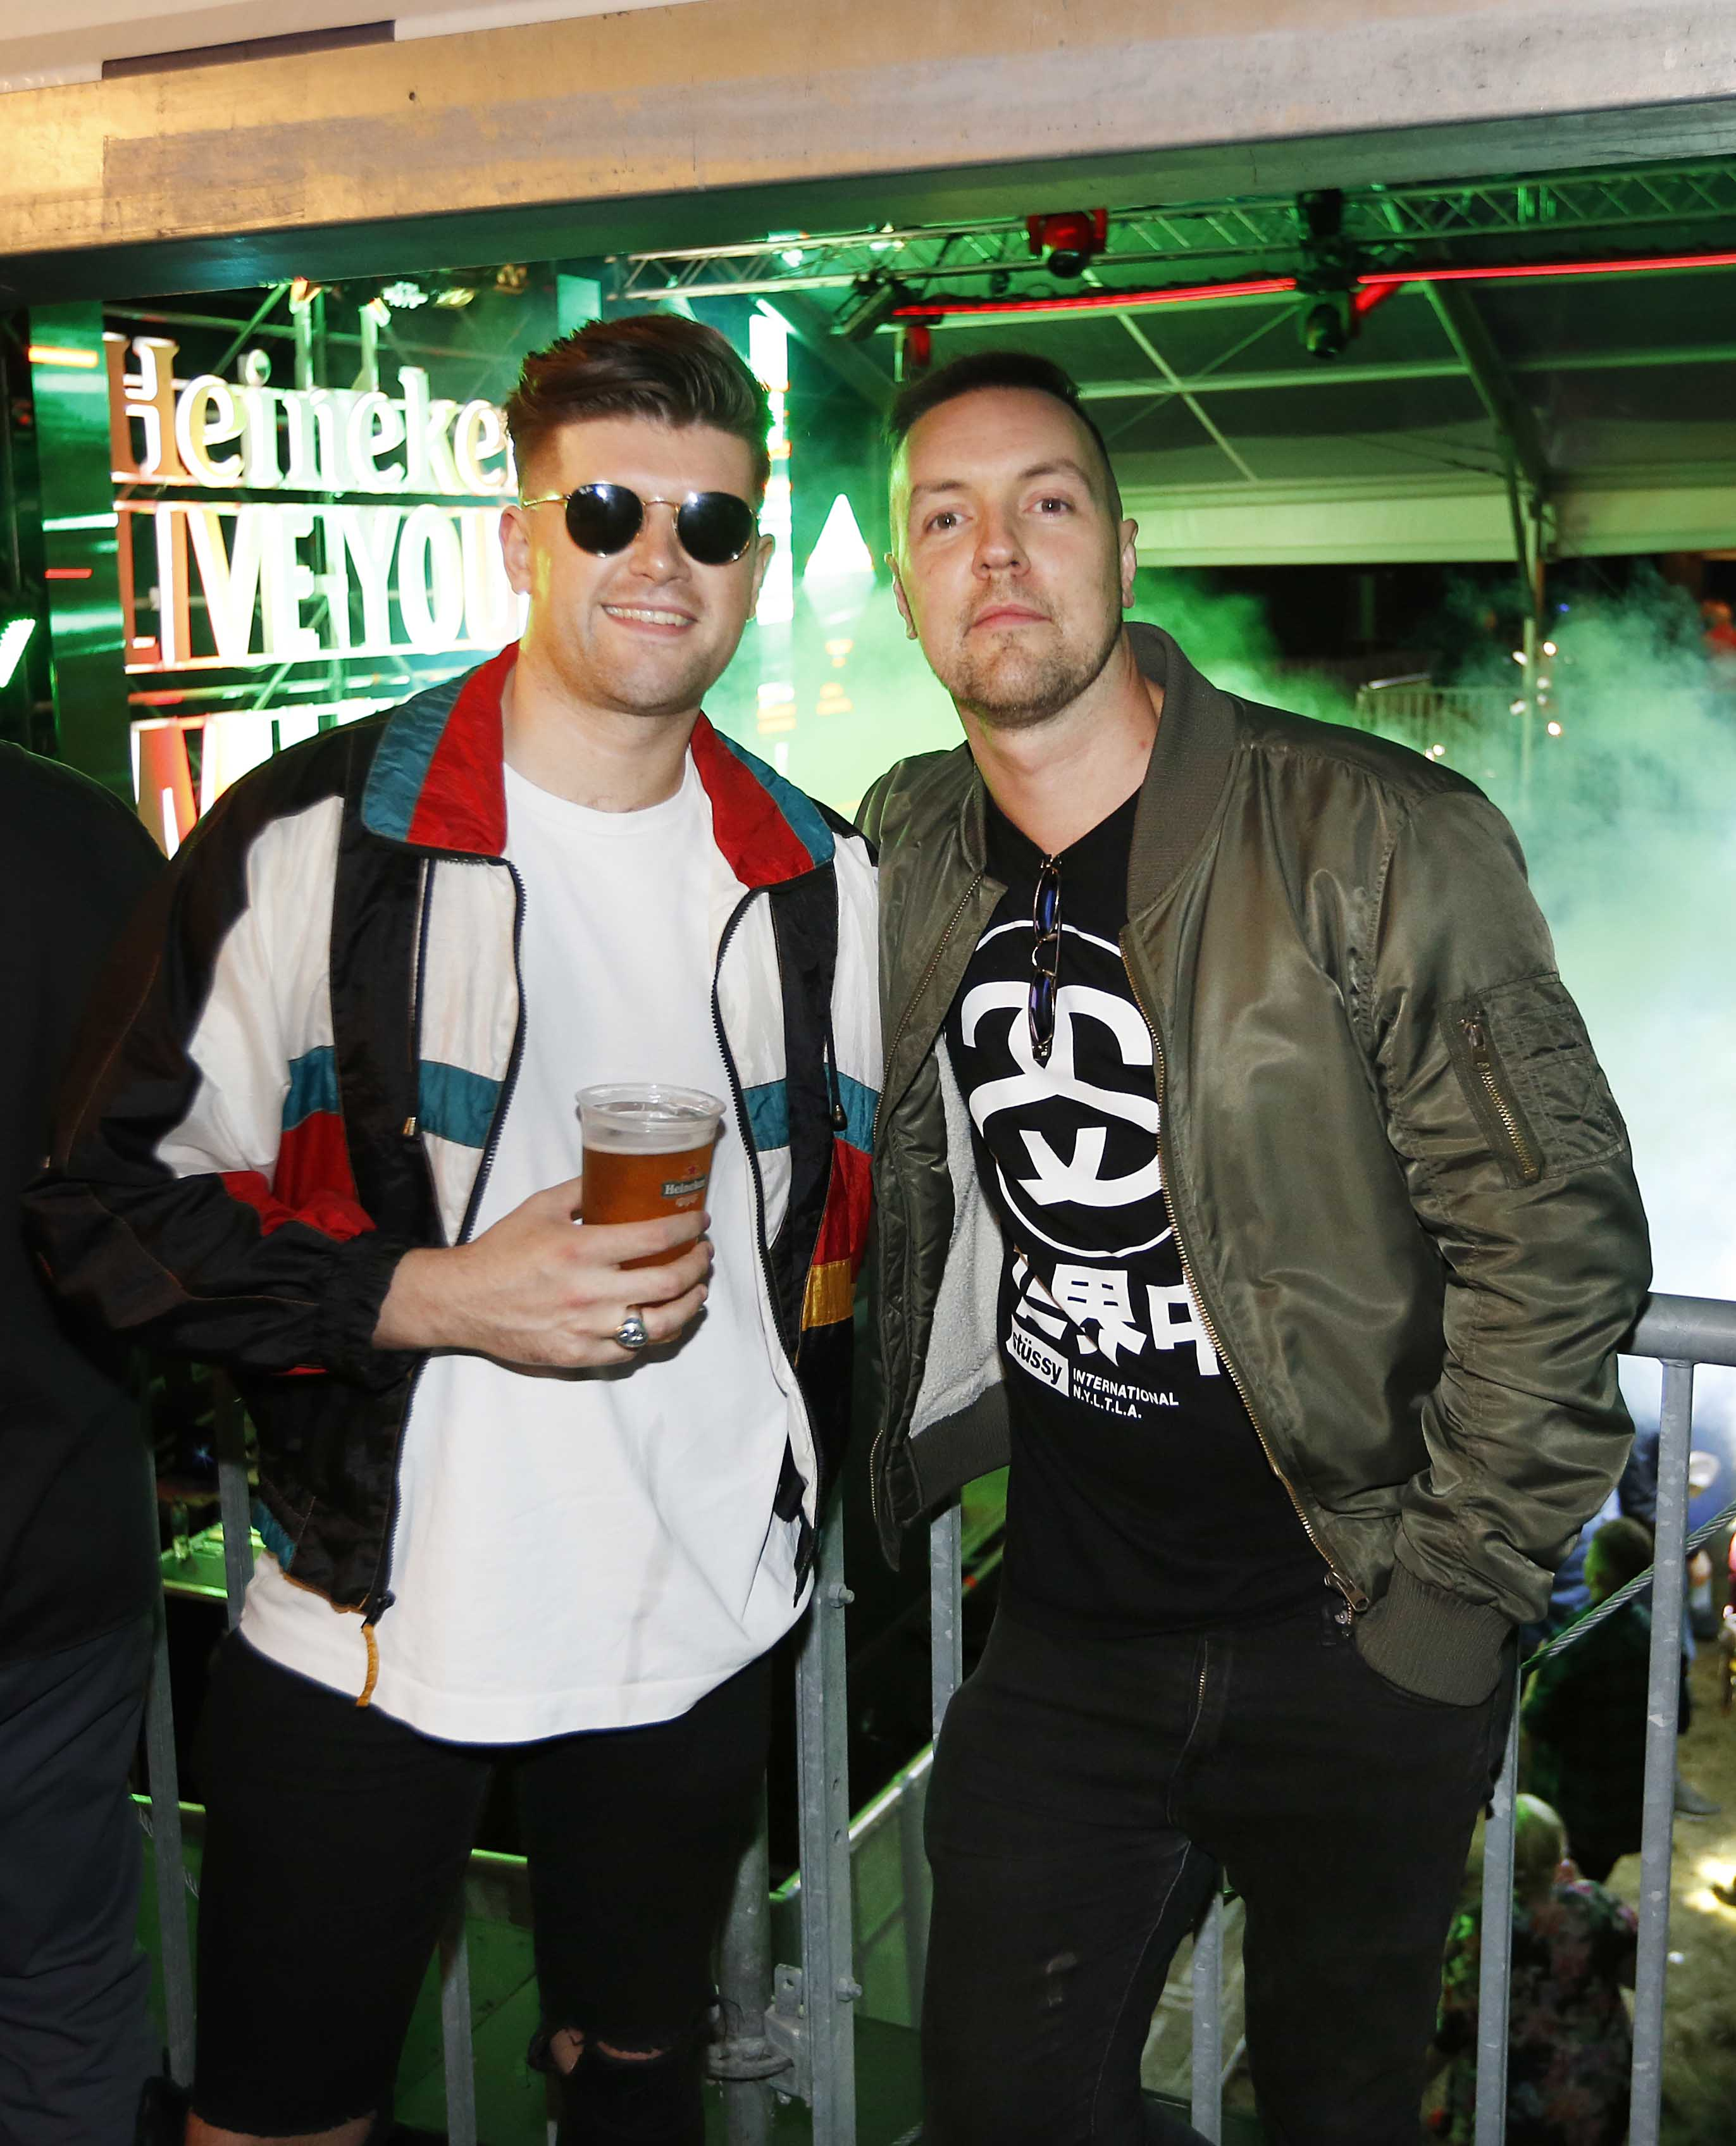 NO REPRO FEE 30/08/2019 Heineken Live Your Music Stage at Electric Picnic 2019. Pictured are (LtoR) Mark Dean Oliver and Davey b at the Heineken Live Your Music Stage at Electric Picnic 2019. This year's area is an enormous structure on two levels, with a glass roof that will keep festival-goers dry but let them dance beneath the sun and stars! The immersive and interactive lightshow has been reimagined for 2019 which, combined with the state-of-the-art soundsystem, make Live Your Music the most impressive festival stage in the country. Photo: Sasko Lazarov/Phorocall Ireland